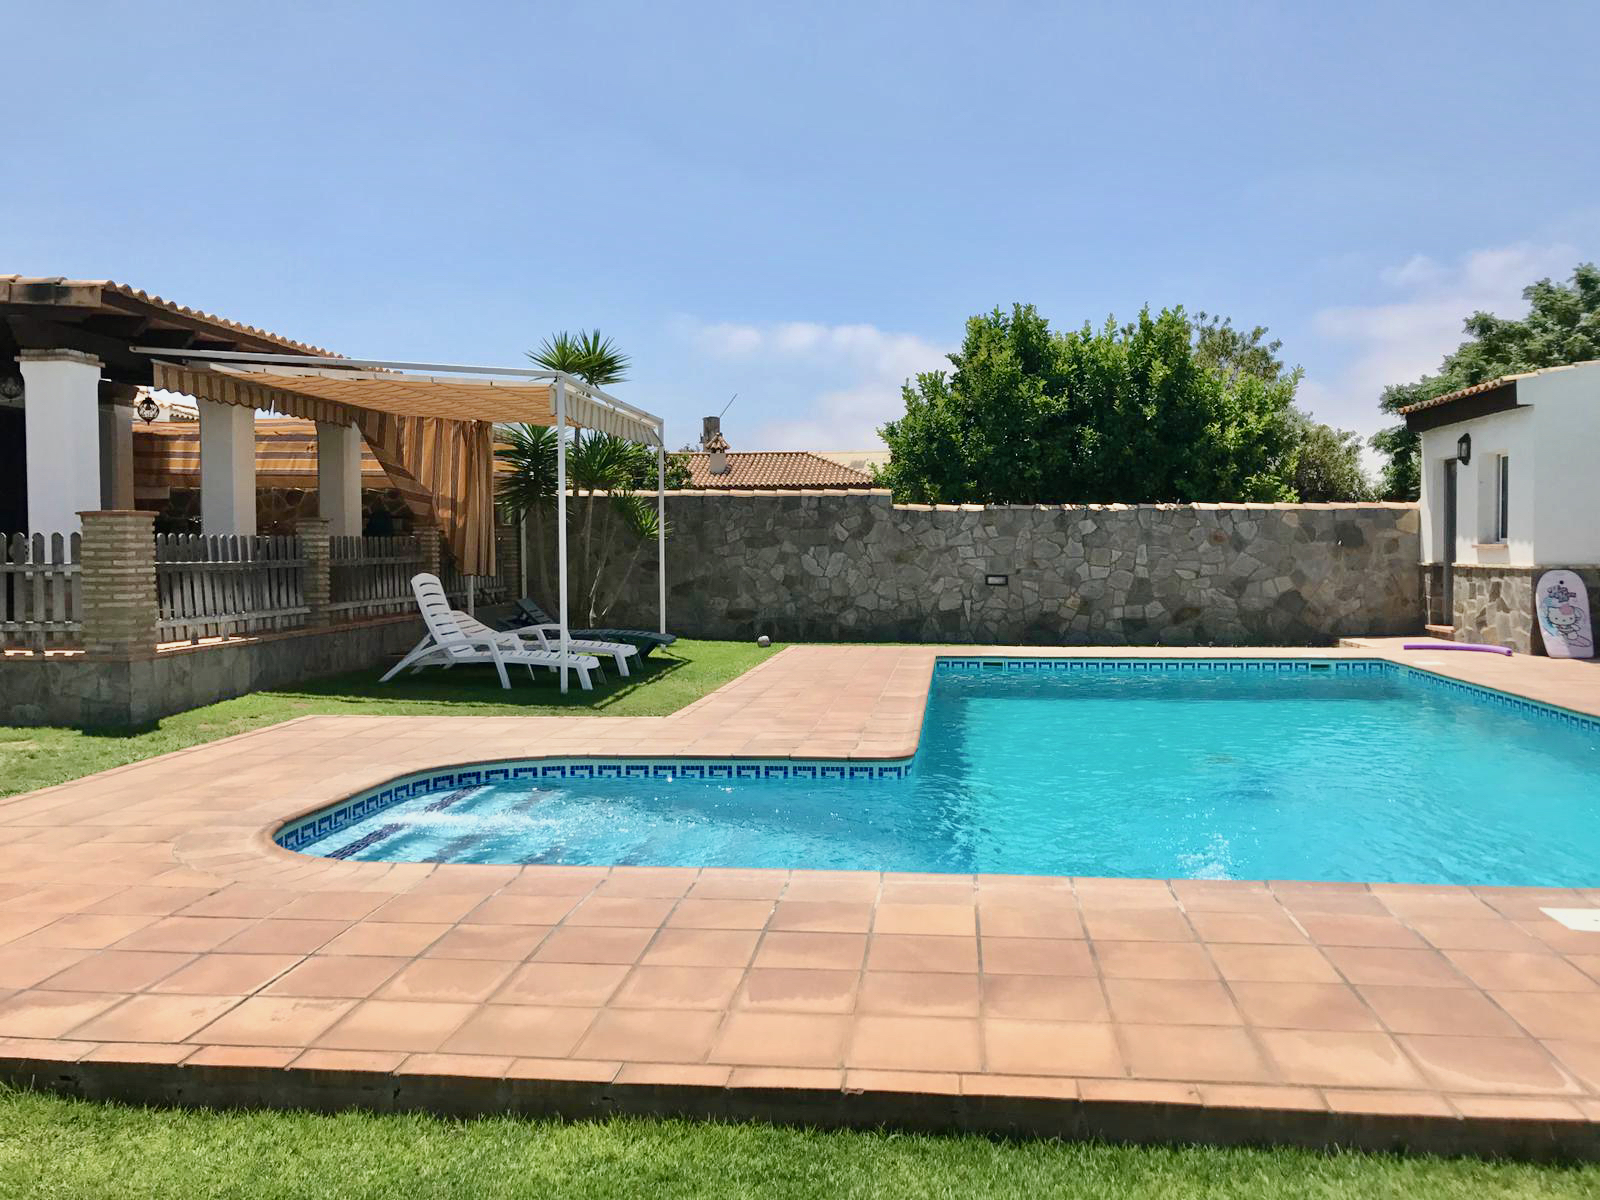 Cerradura, Beautiful and comfortable villa in Chiclana de la Frontera, Andalusia, Spain  with private pool for 8 persons.....